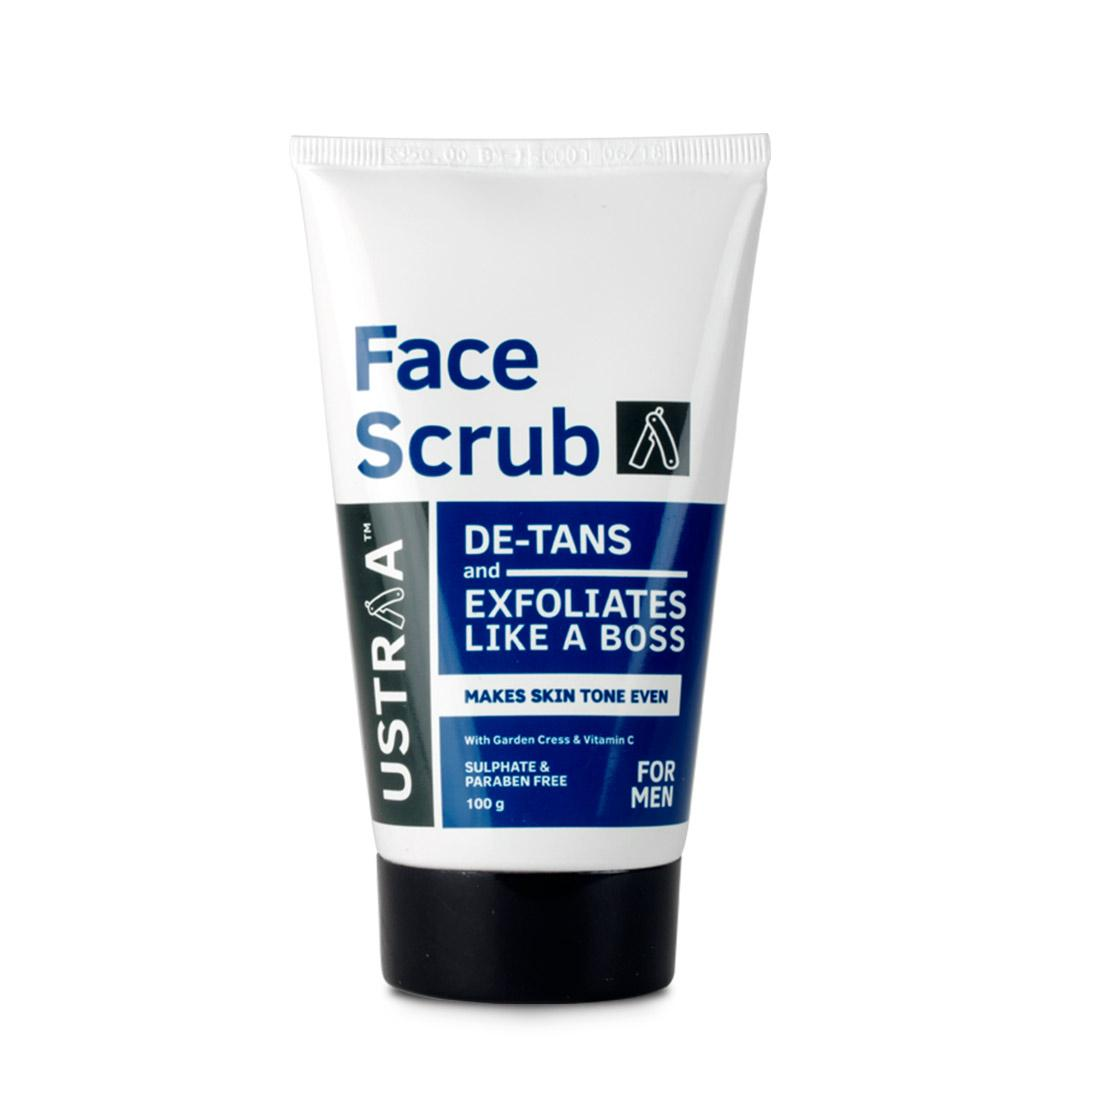 Ustraa De-Tan Face scrub for men, Exfoliation and tan removal with Walnut Granules to reduce dark spots & blackheads, 100g